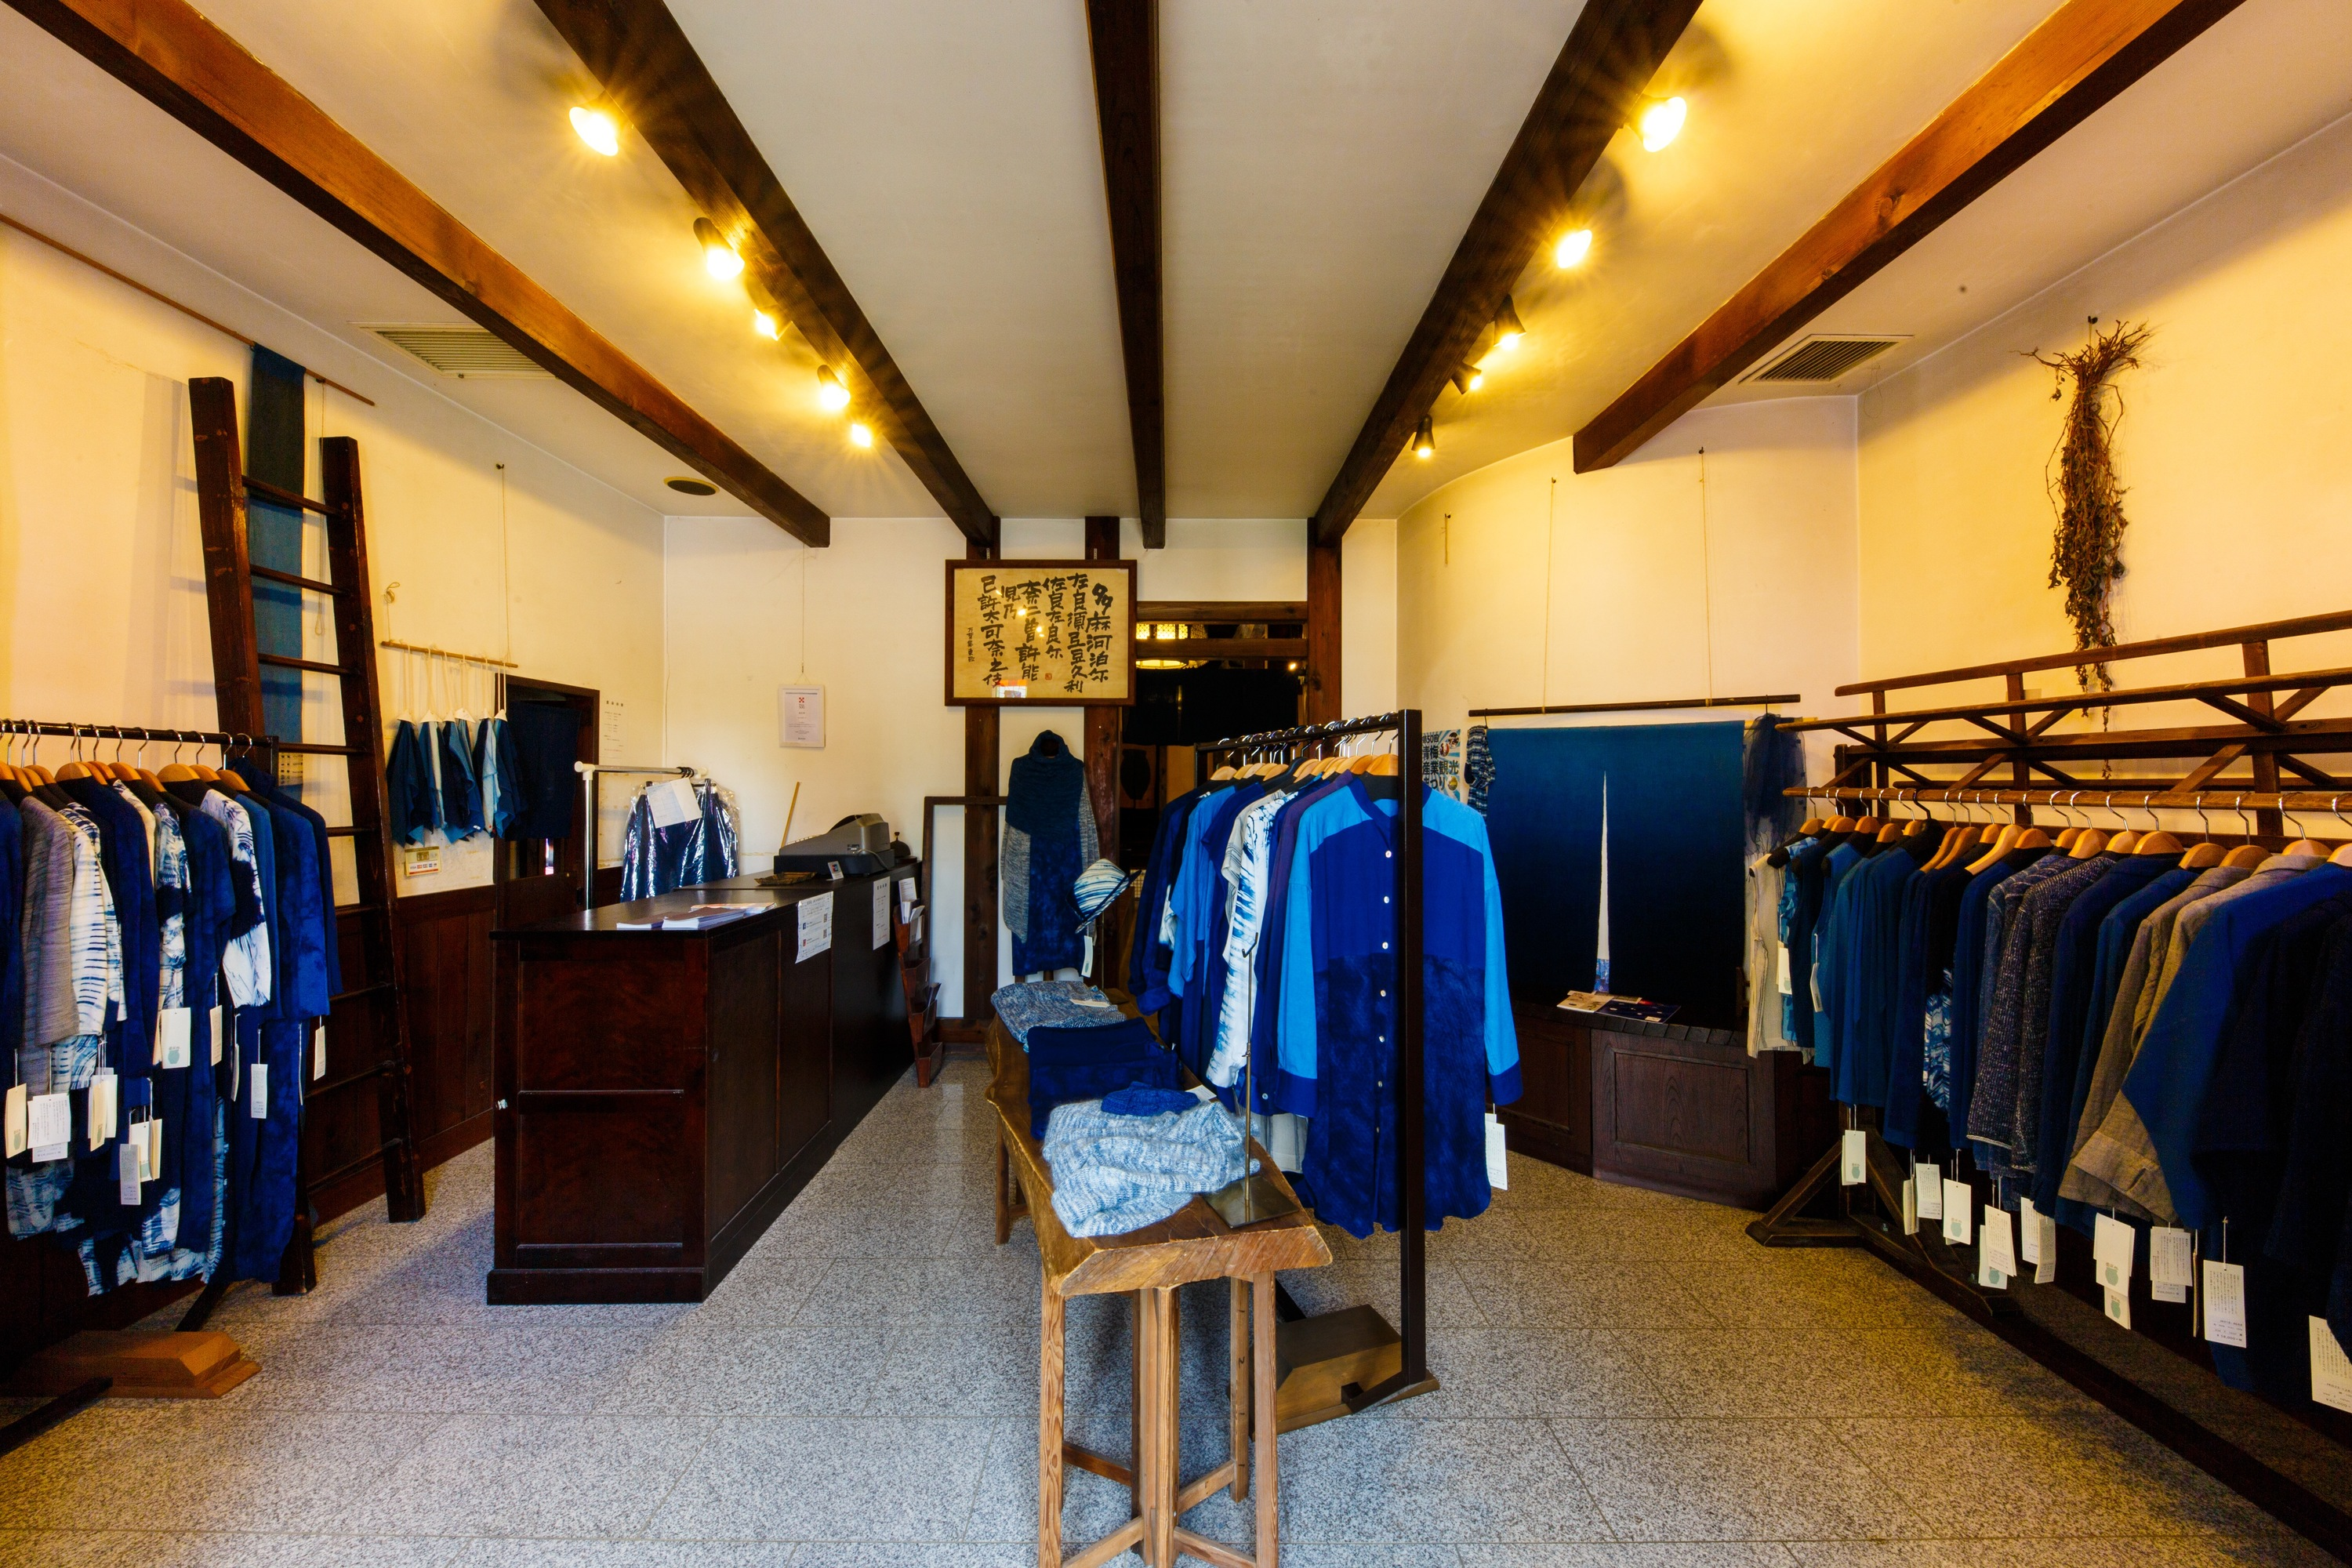 Where to buy or make indigo products in Tokyo